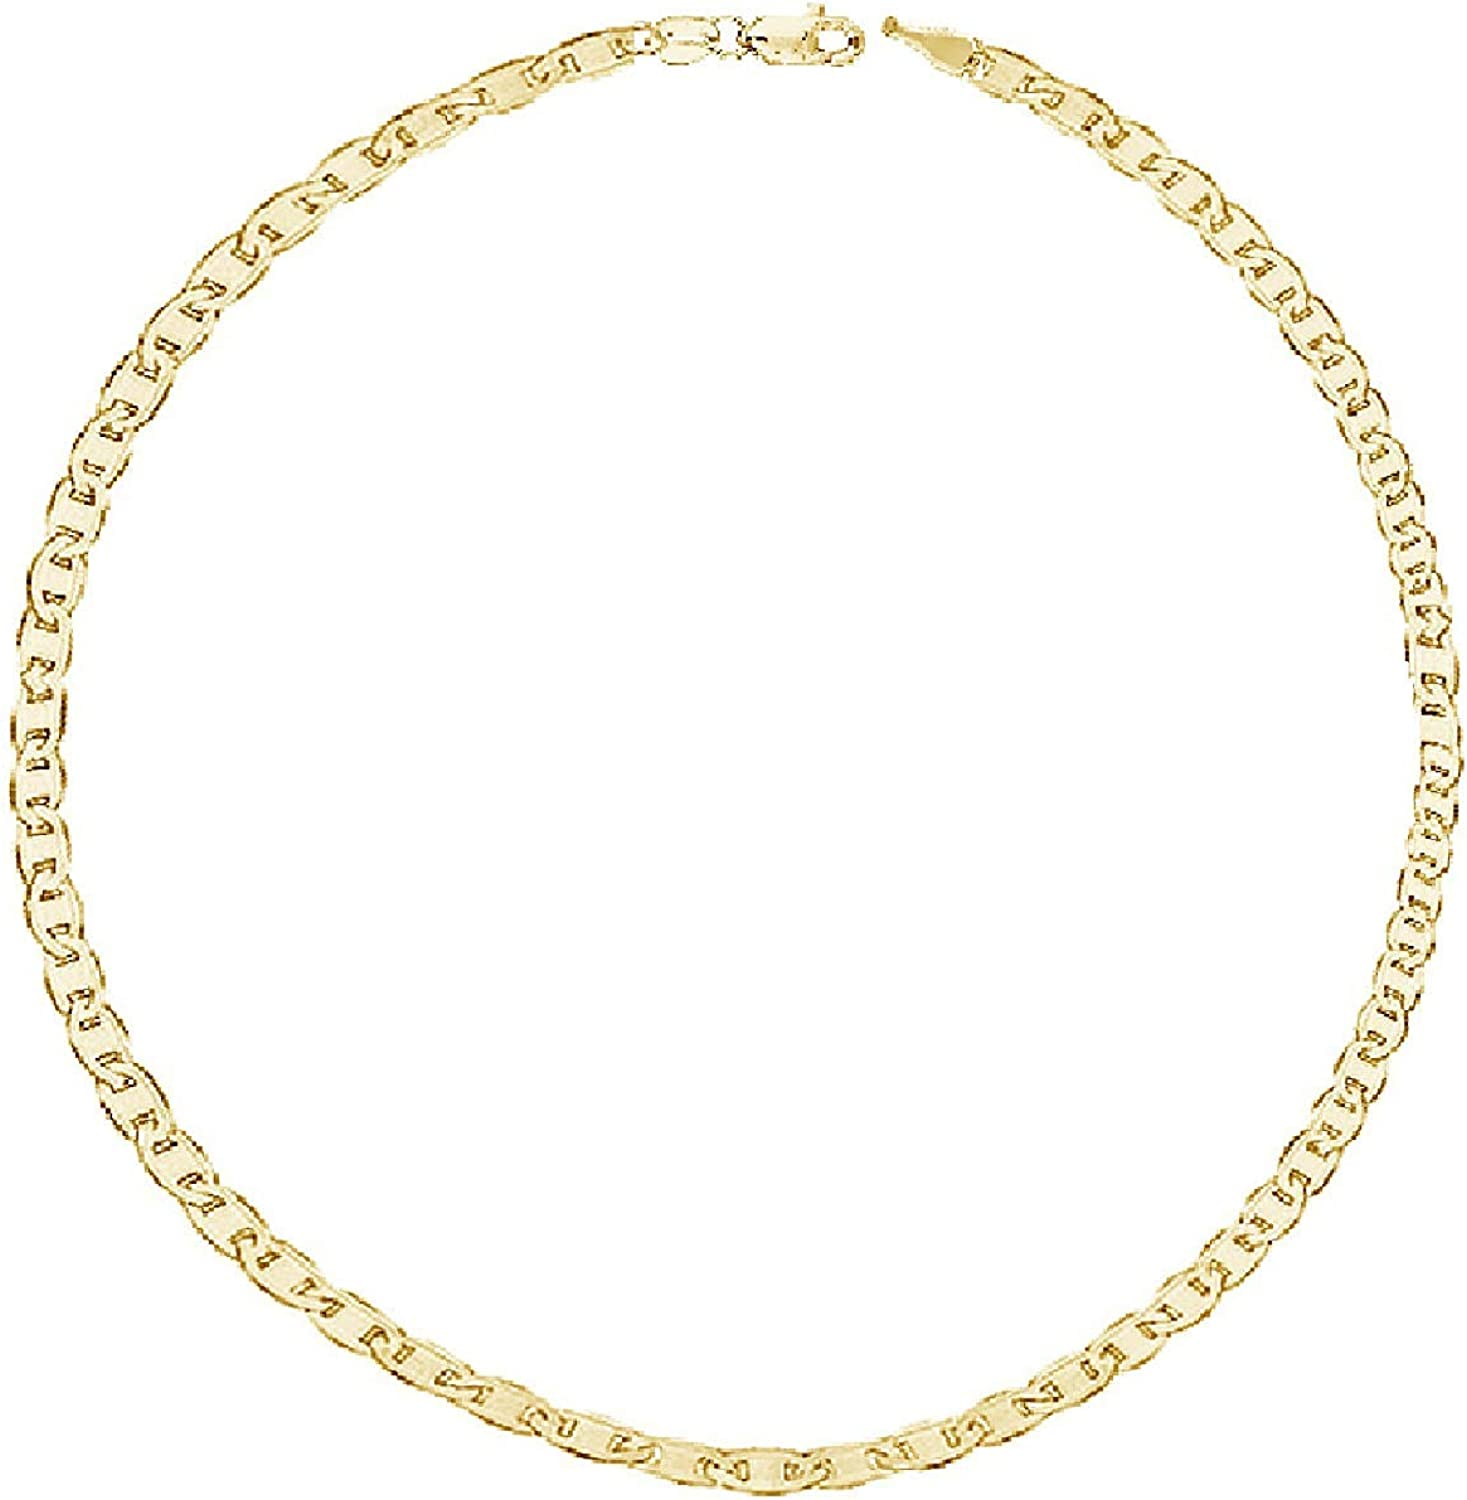 The Diamond Deal Unisex 14K Yellow Gold 5.5mm Shiny Mariner-Link Chain Necklace or Bracelet Bangle for Pendants and Charms with Lobster-Claw Clasp 7, or 8 inch